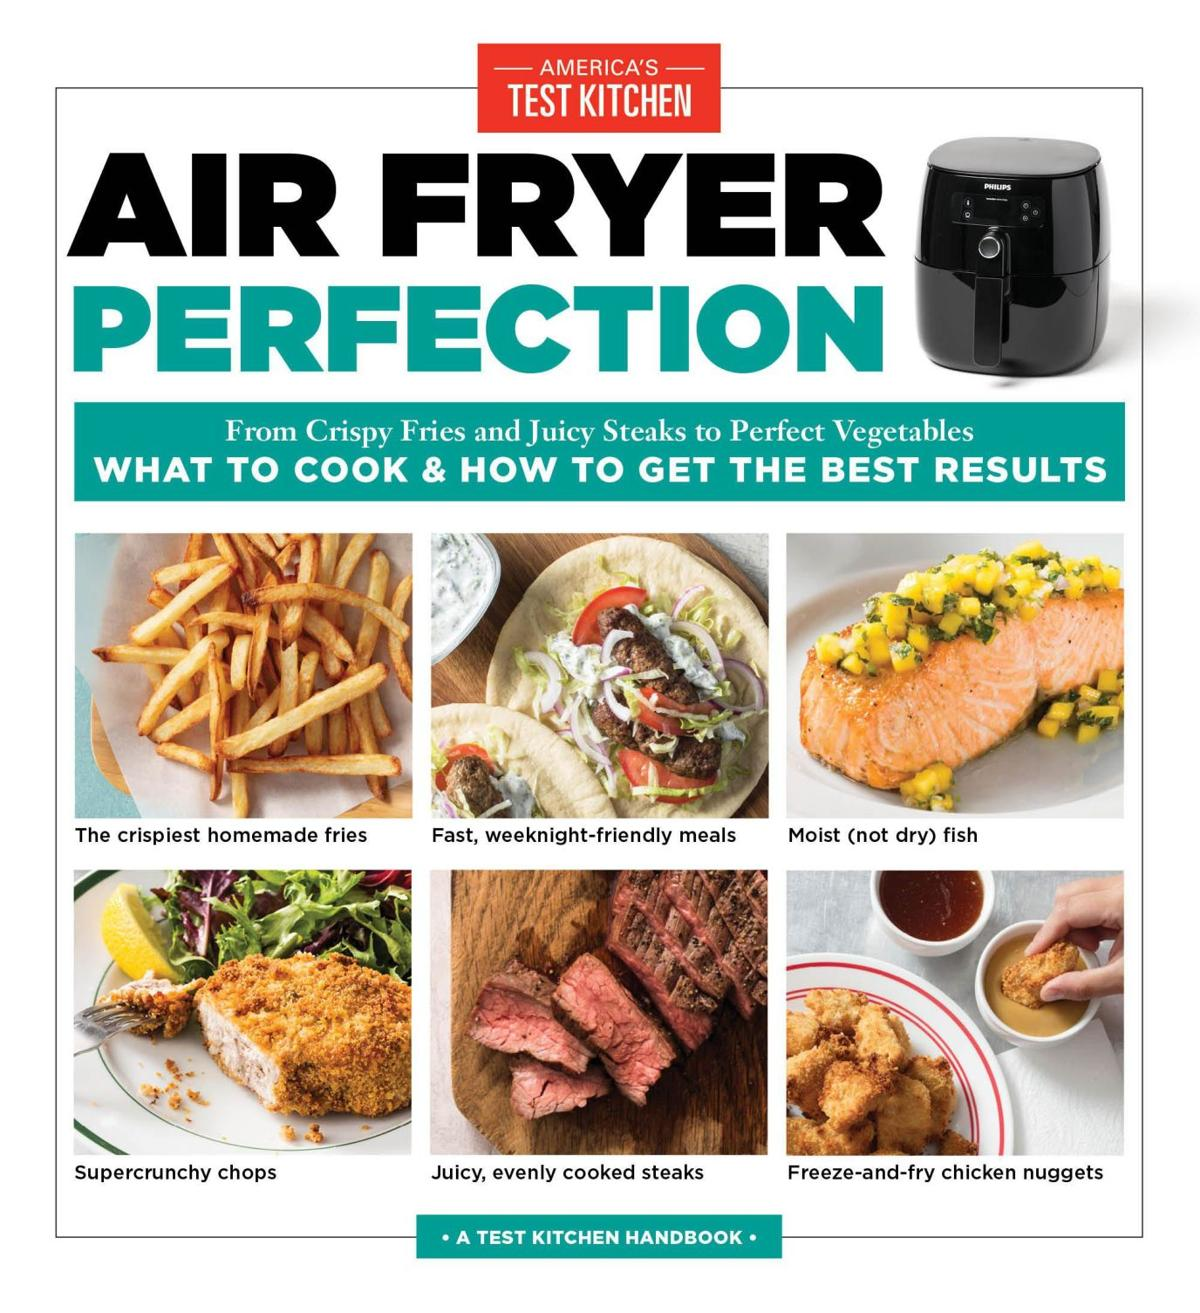 Stephen Fries: Air fryers offer fantastic 'fried' foods without the hassle